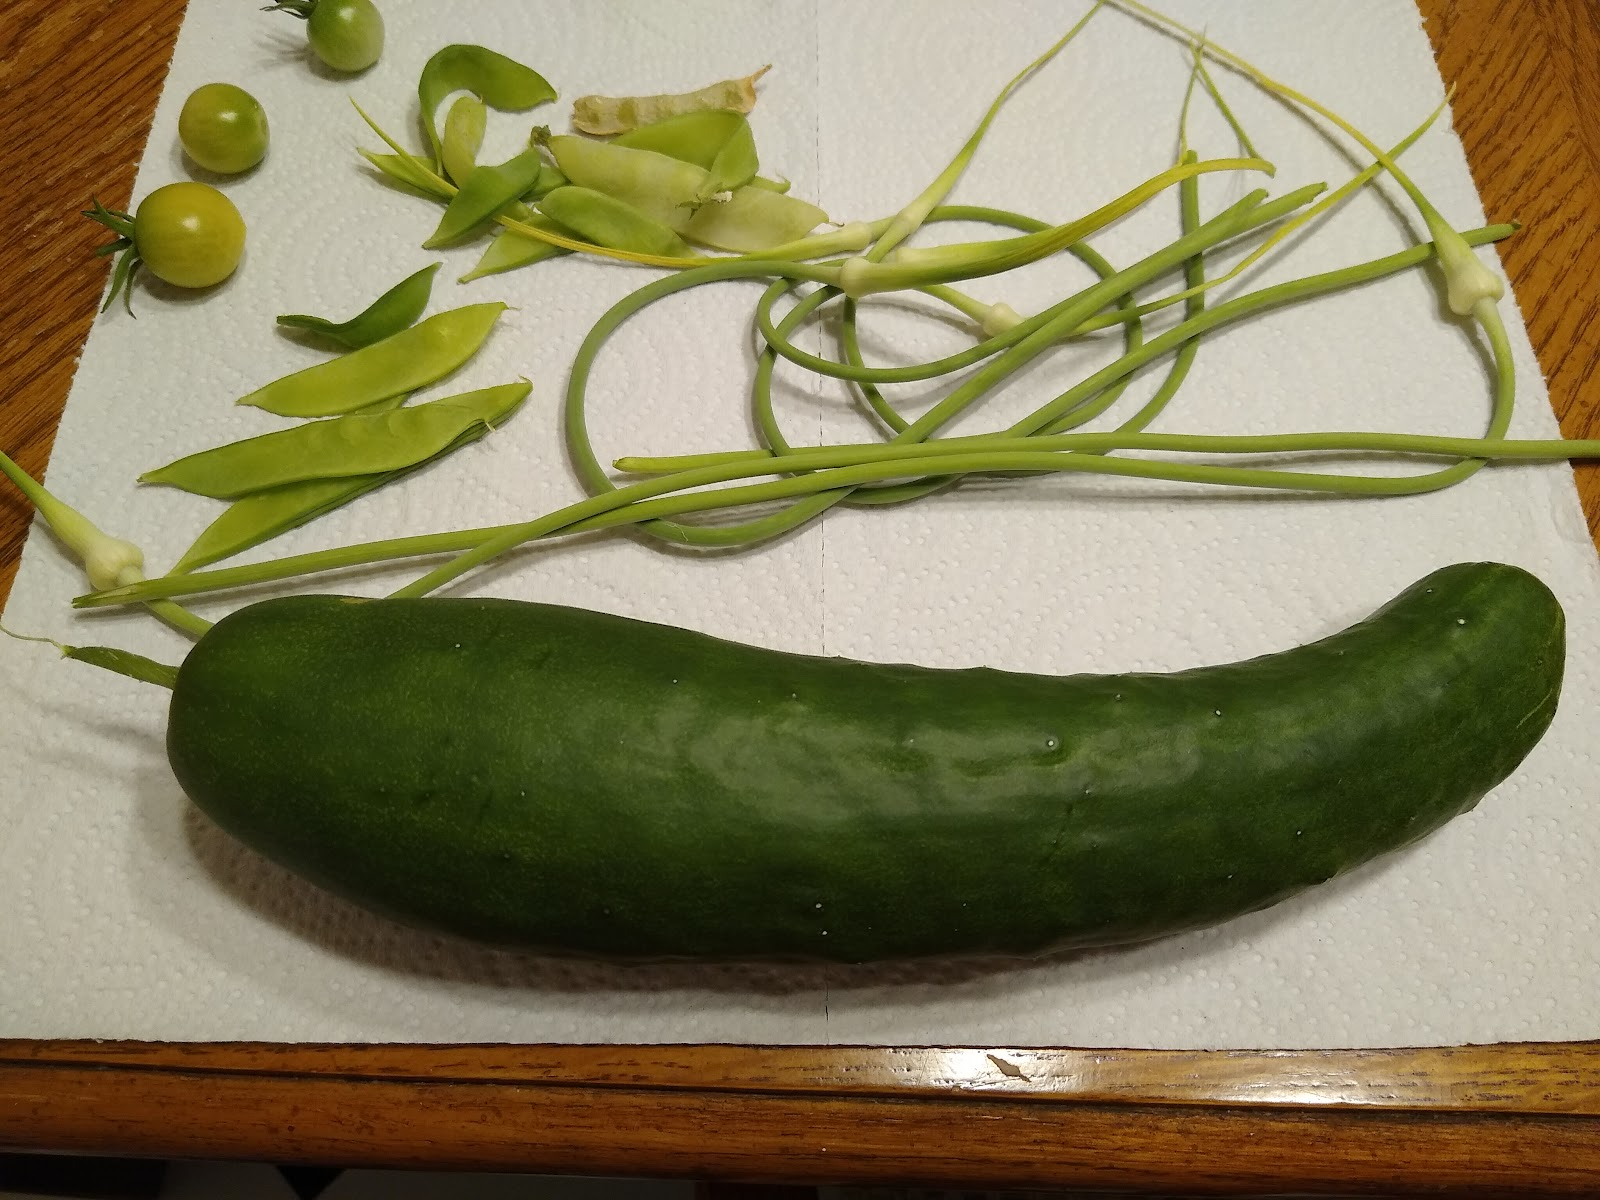 homegrown cucumber, garlic scapes, tomatoes and pea pods picture